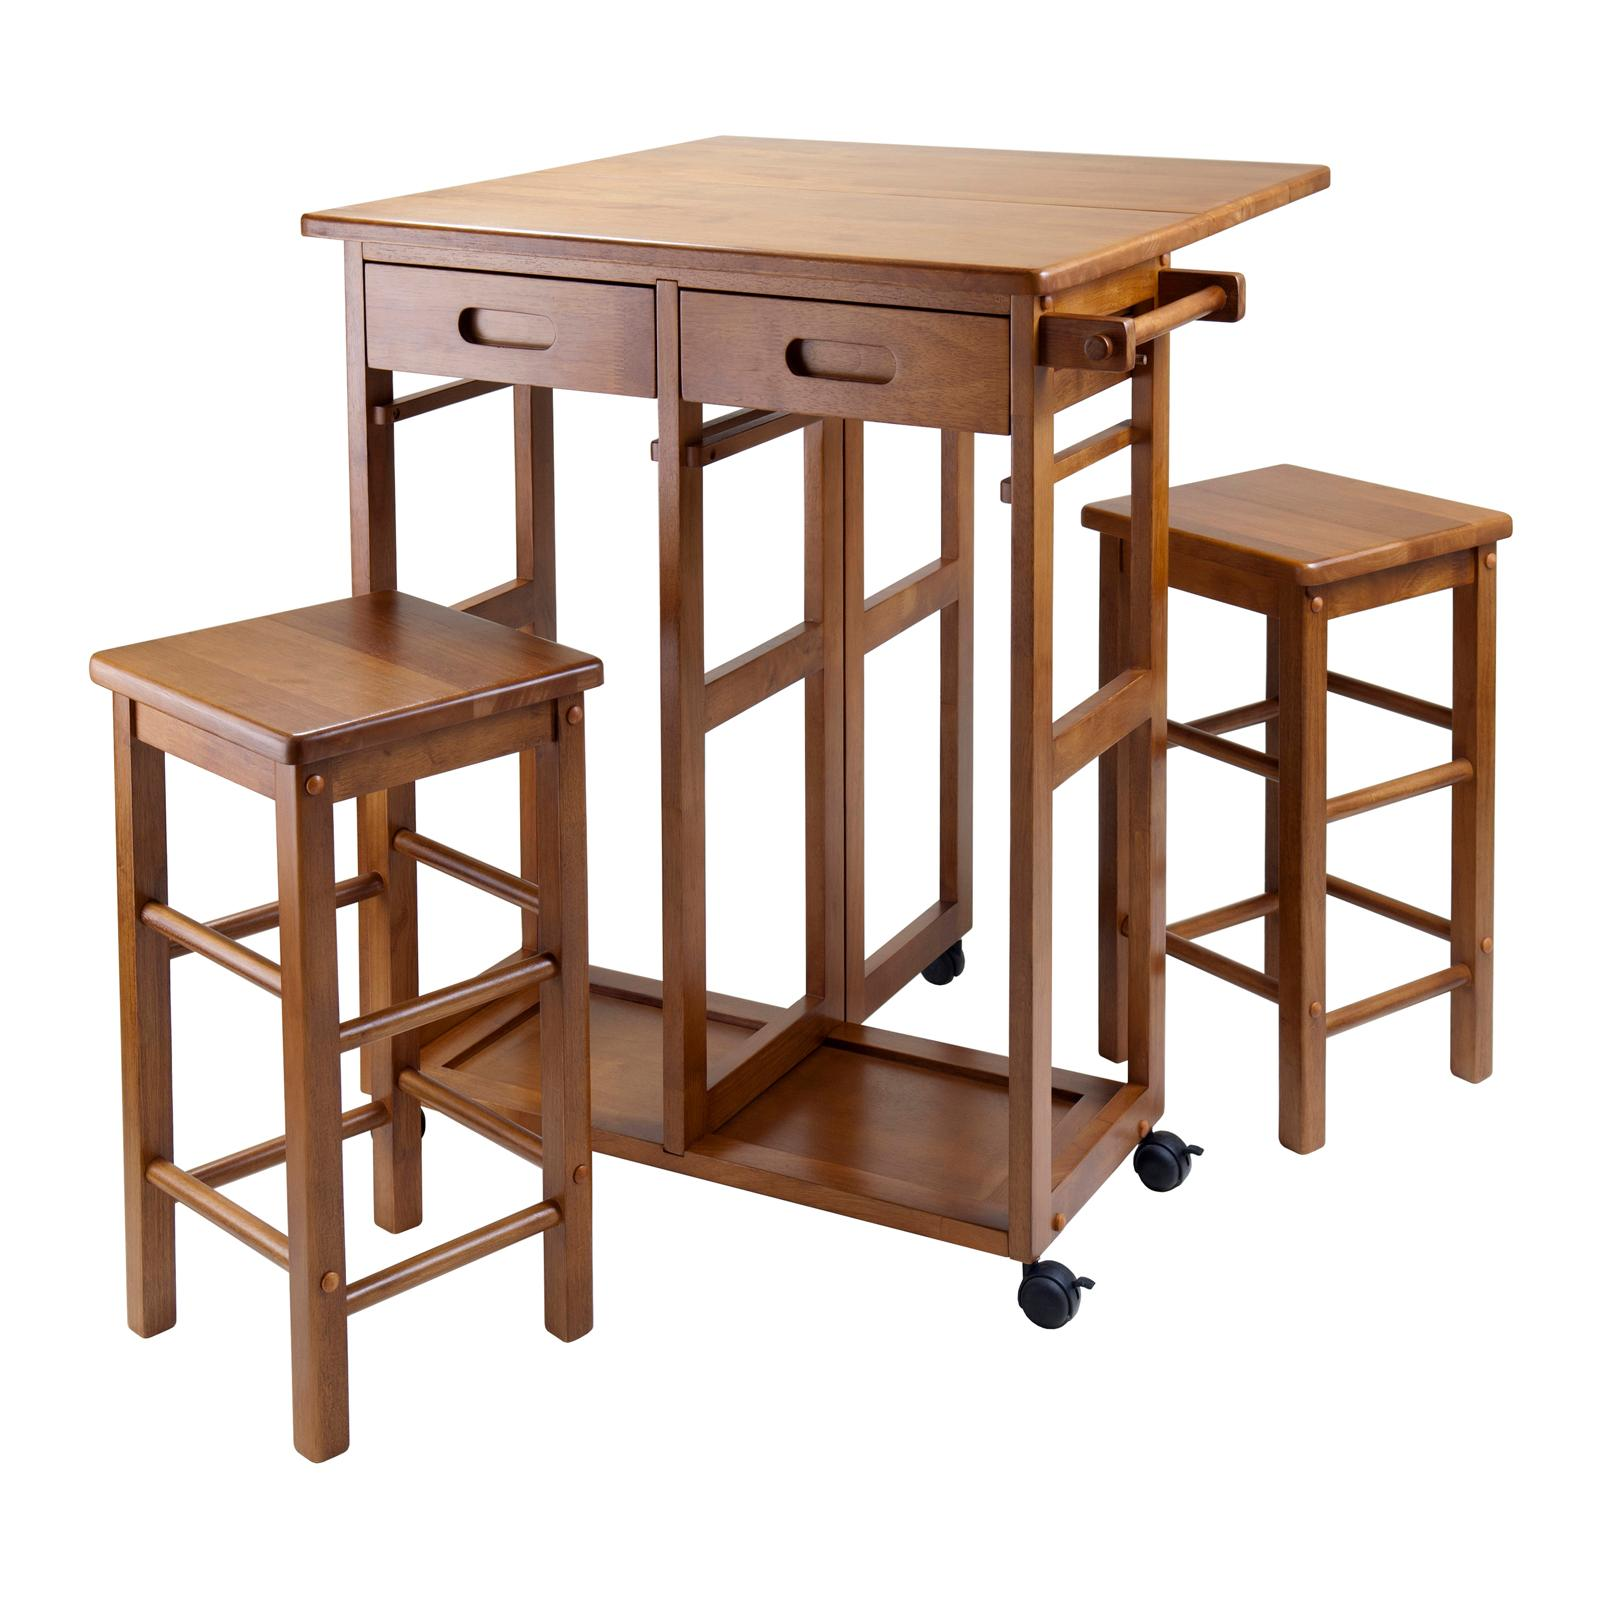 Winsome 39330 suzanne kitchen square teak - Kitchen island with stools ...